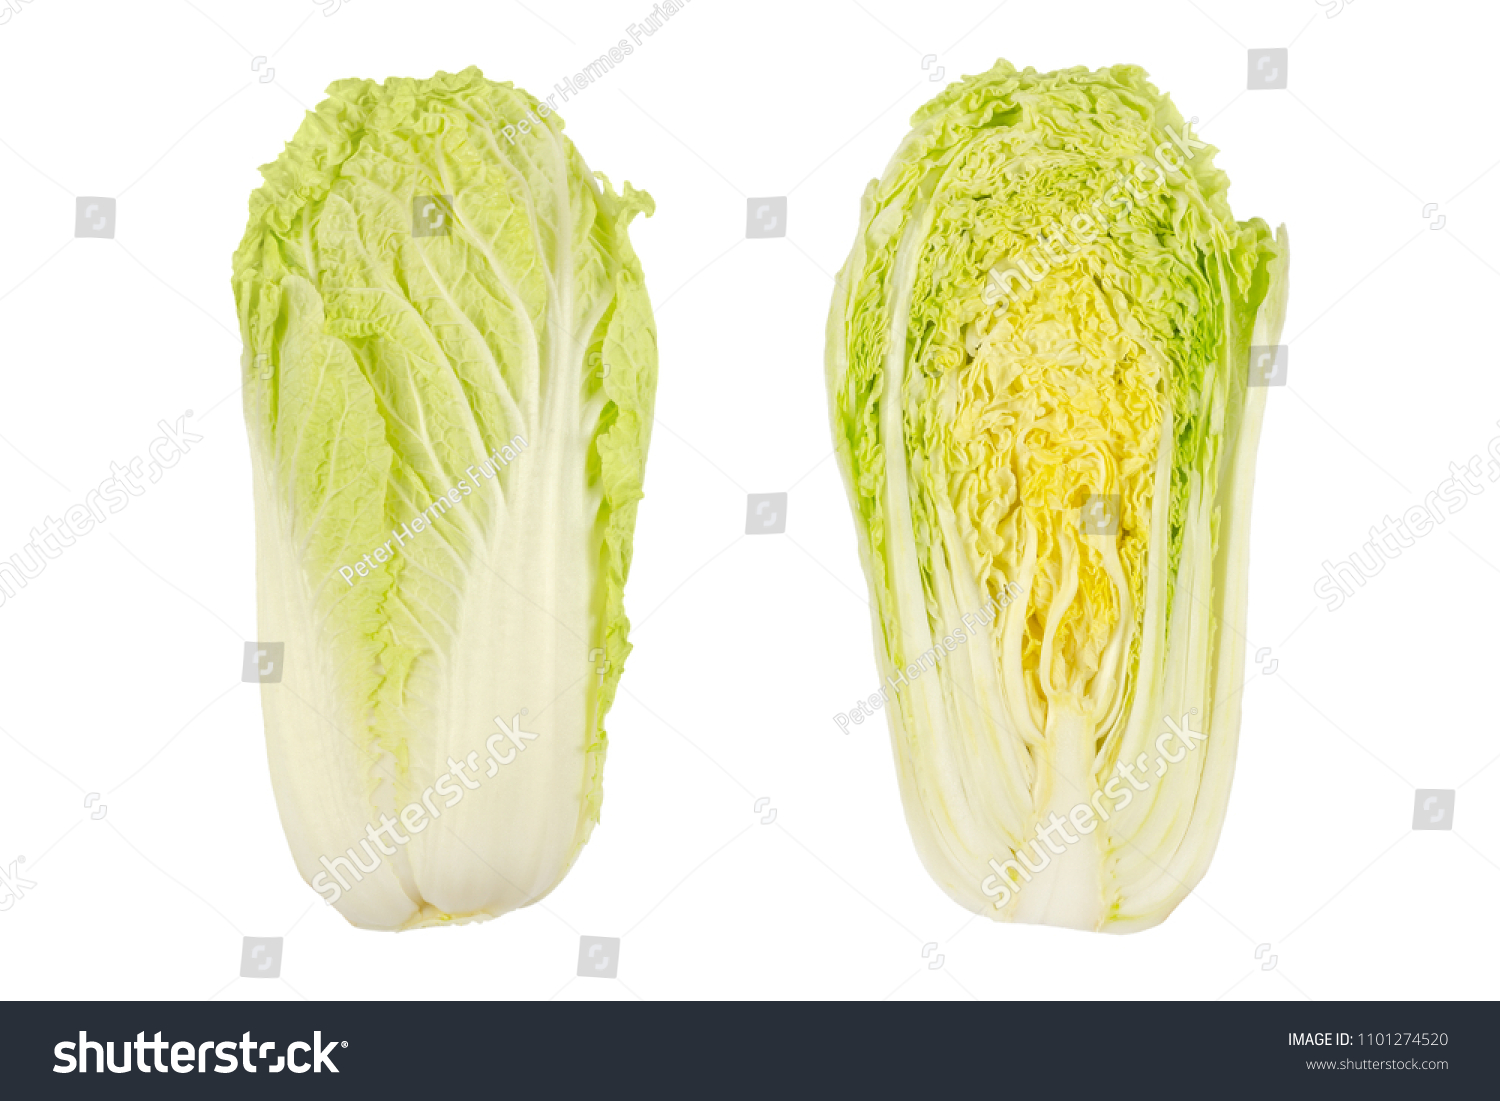 Napa Cabbage Whole Half Chinese Cabbage Stock Photo Edit Now 1101274520